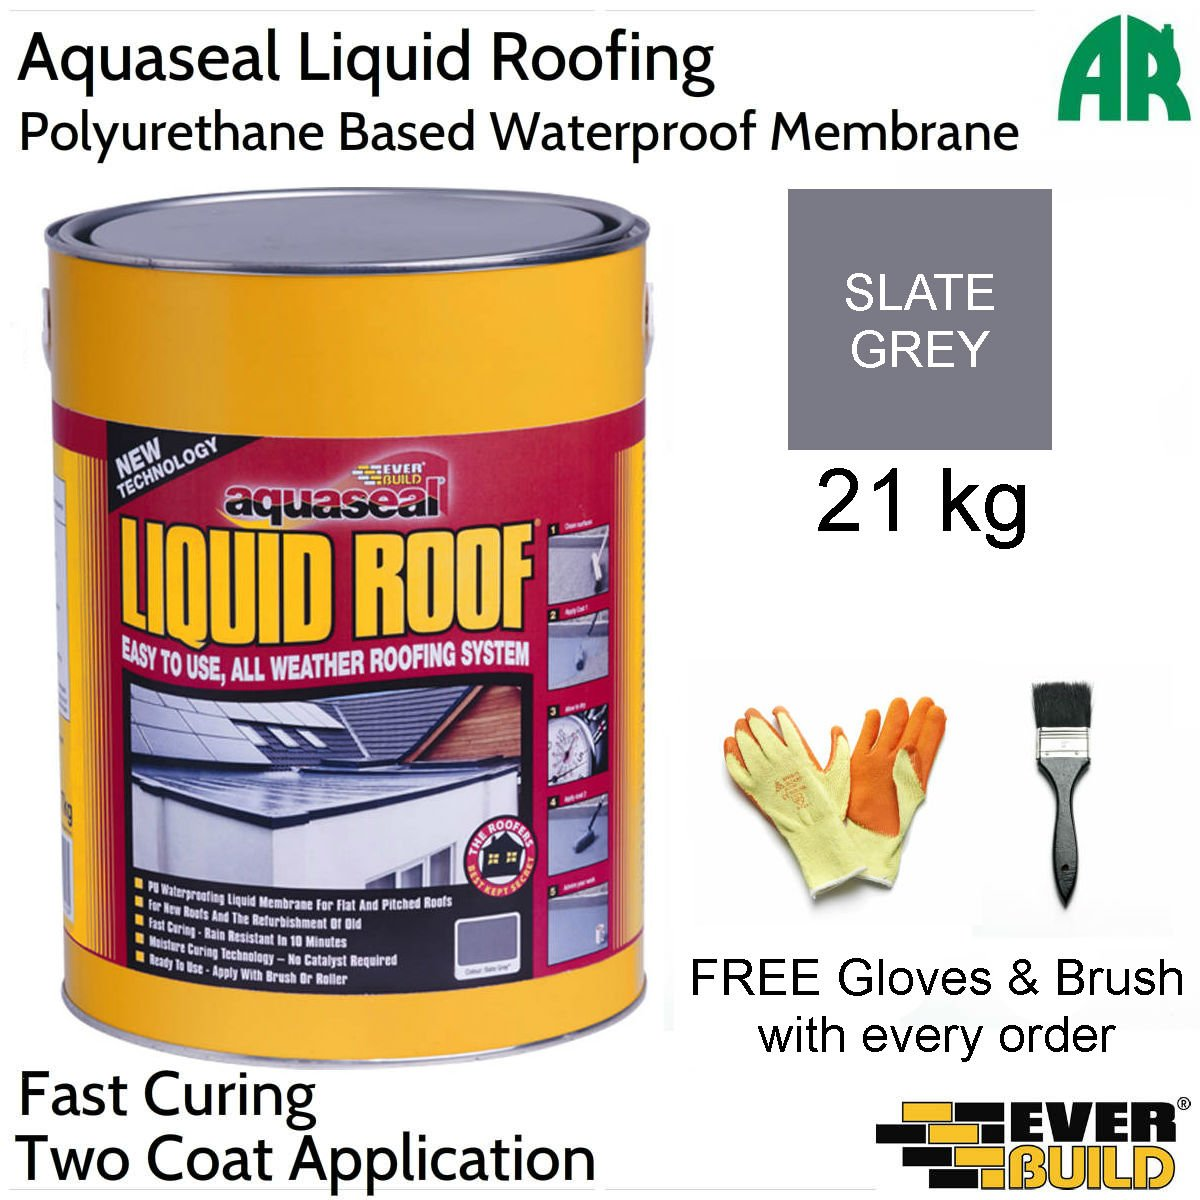 Everbuild Aquaseal Liquid Roof | Rubber Roof Membrane | All Weather Roofing System | Two Colours | Two Sizes | Free Brush & Gloves | By Everbuild (Large, Slate Grey)